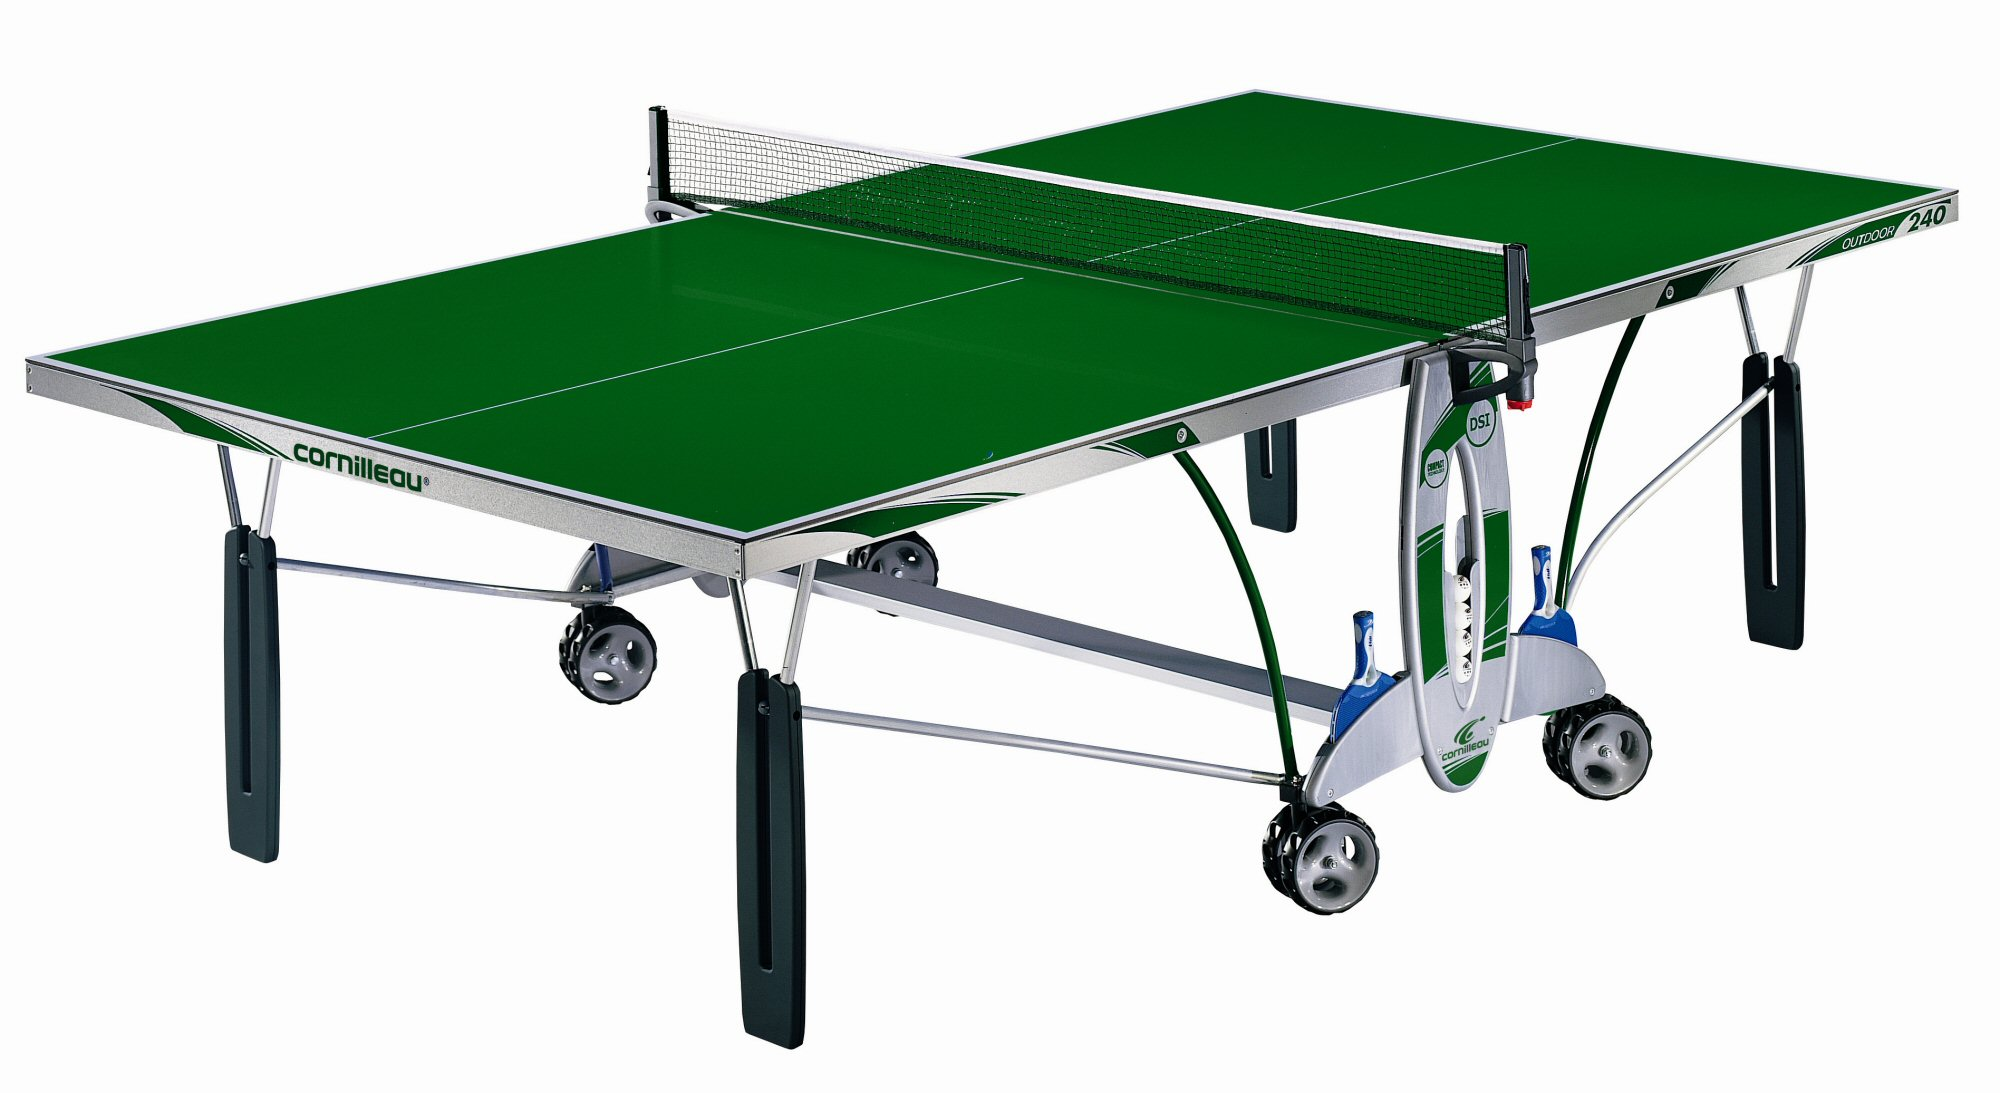 Cornilleau sport outdoor table tennis tables - Weatherproof table tennis table ...